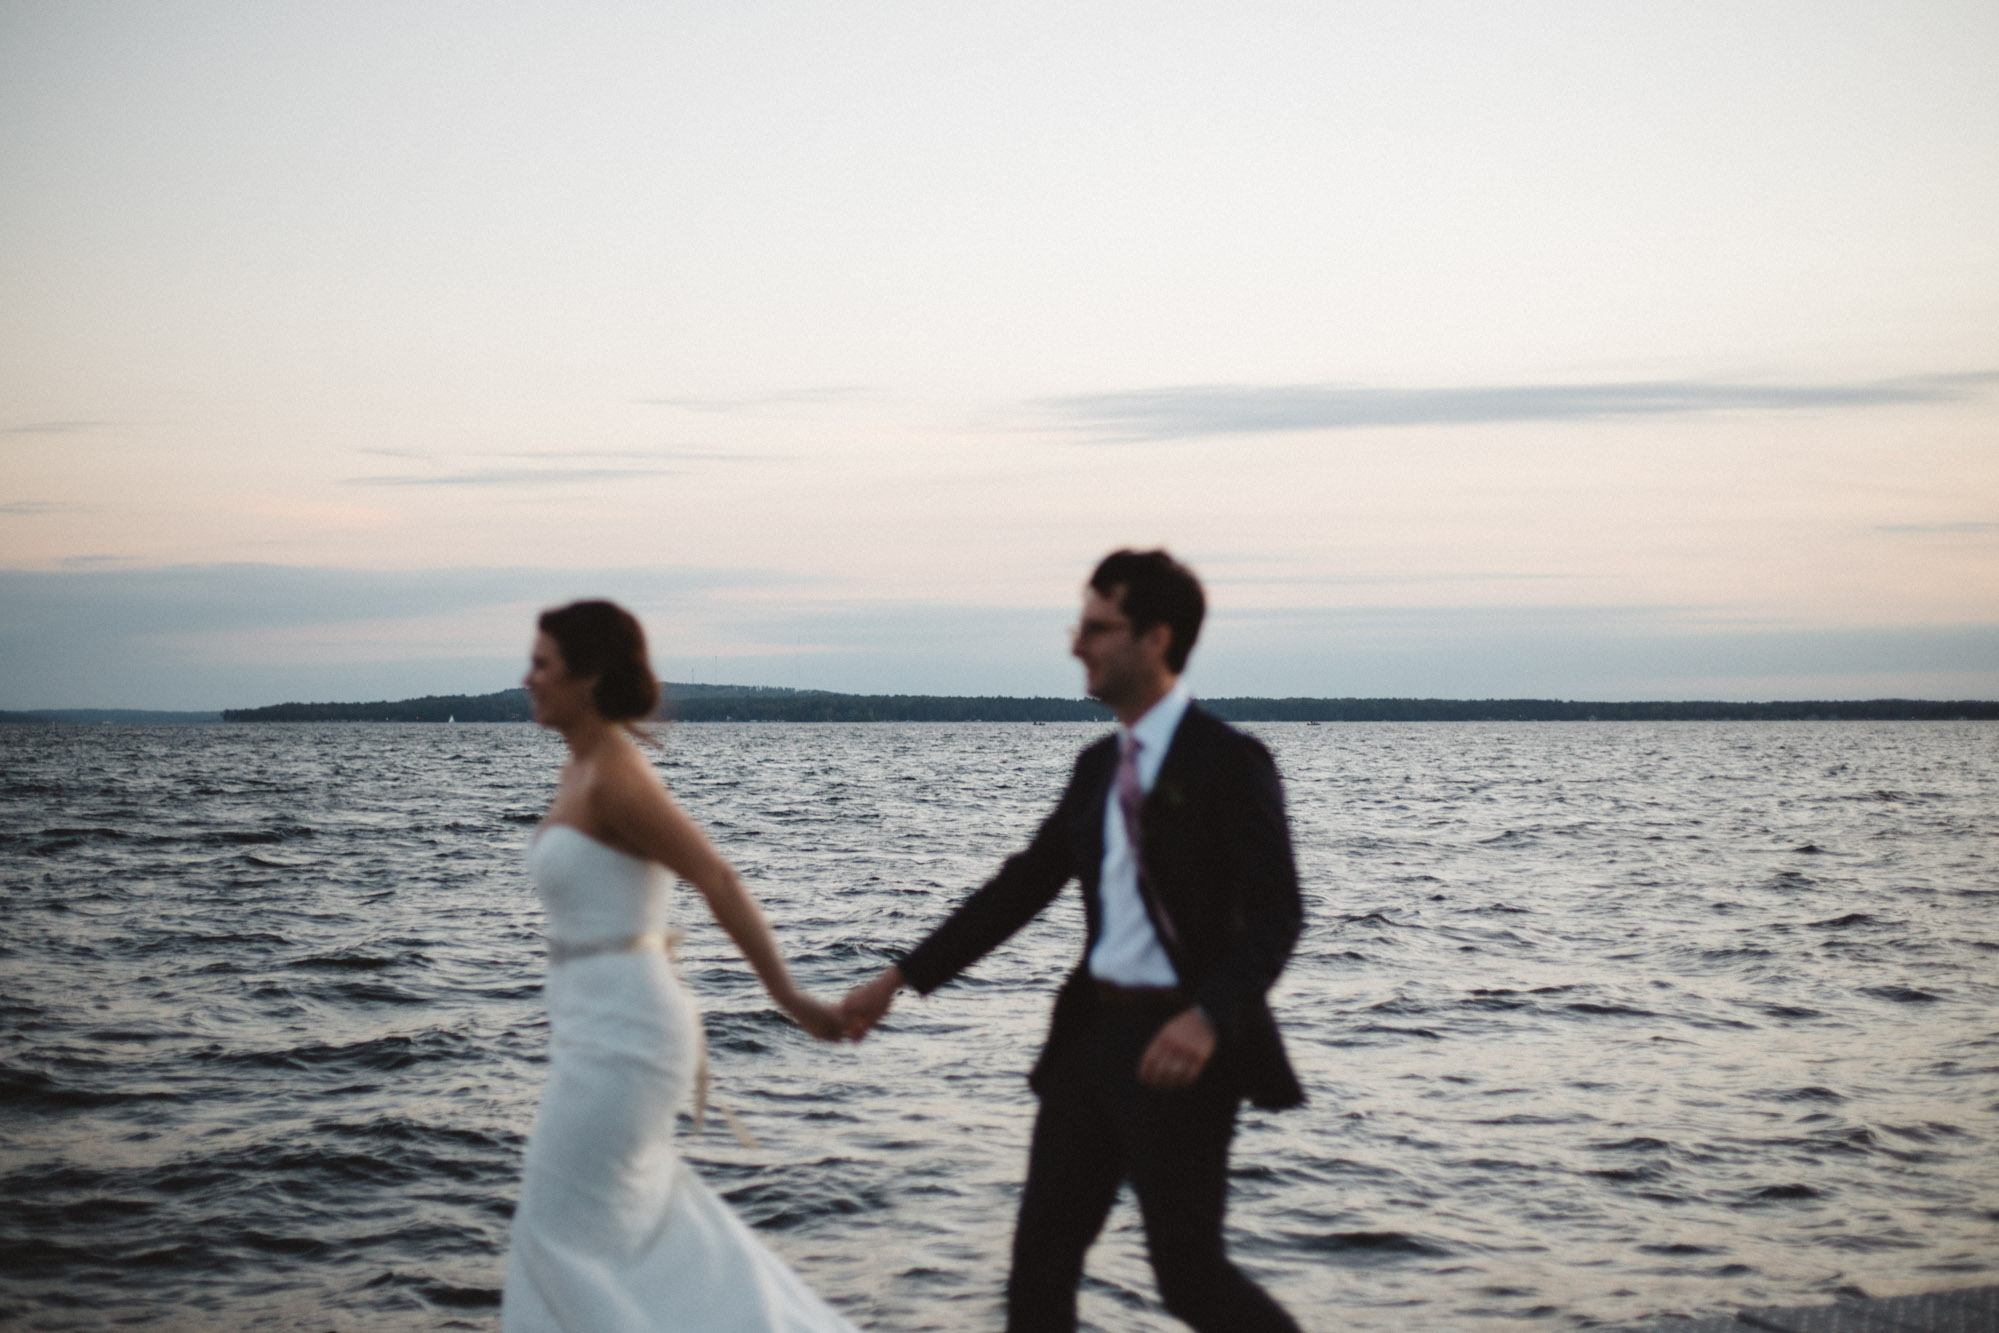 Artistic wedding photography on Gull Lake in Brainerd Minnesota